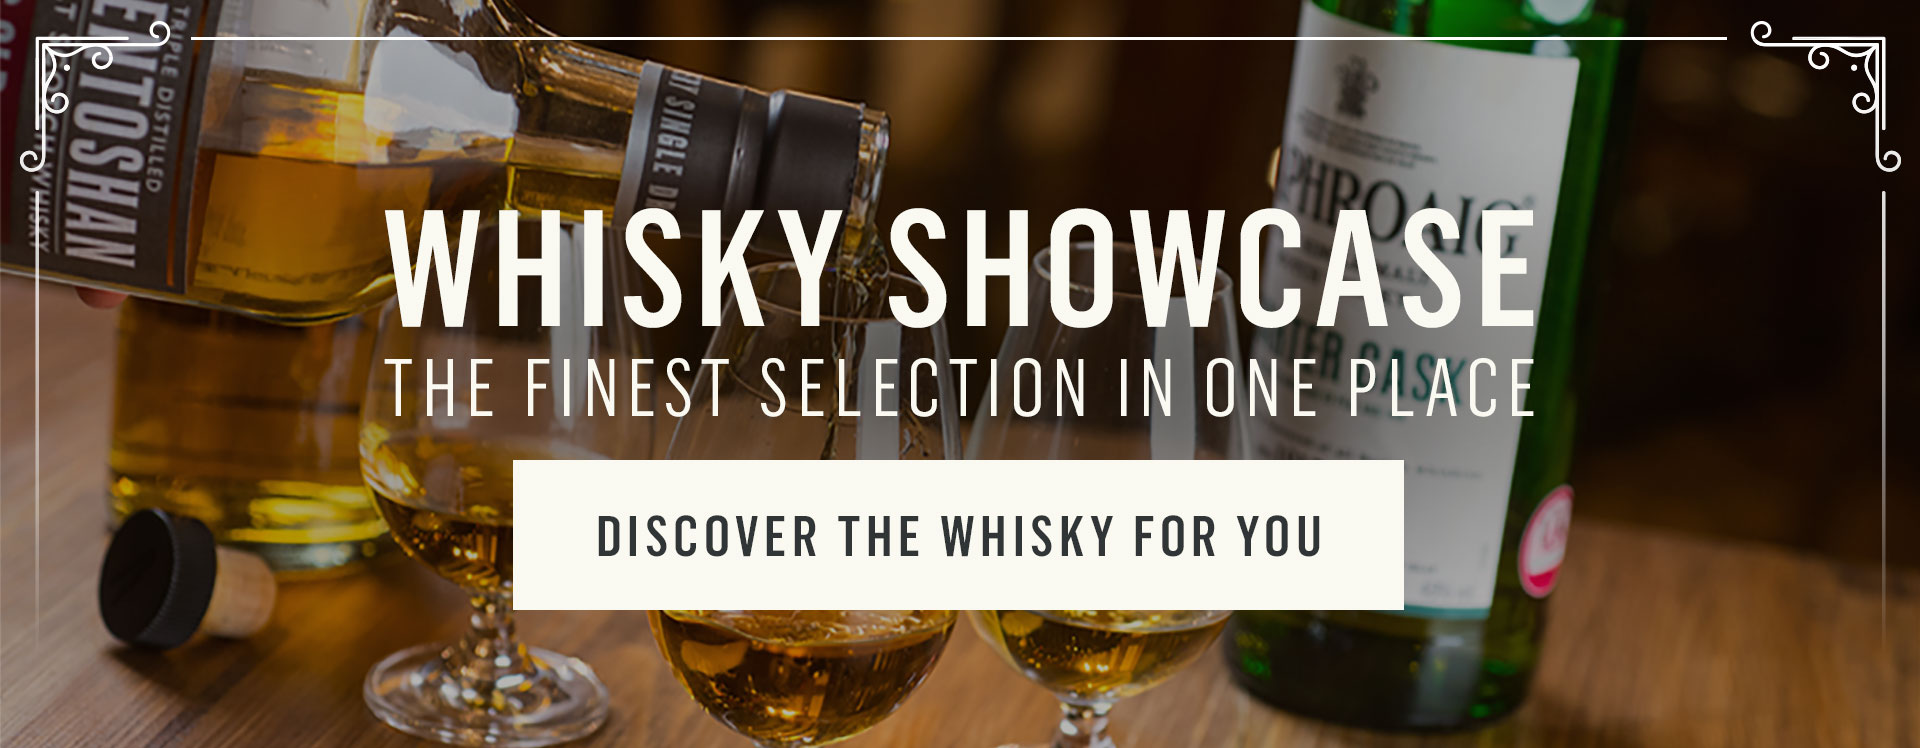 Whisky Showcase at The Old Bell Tavern in London